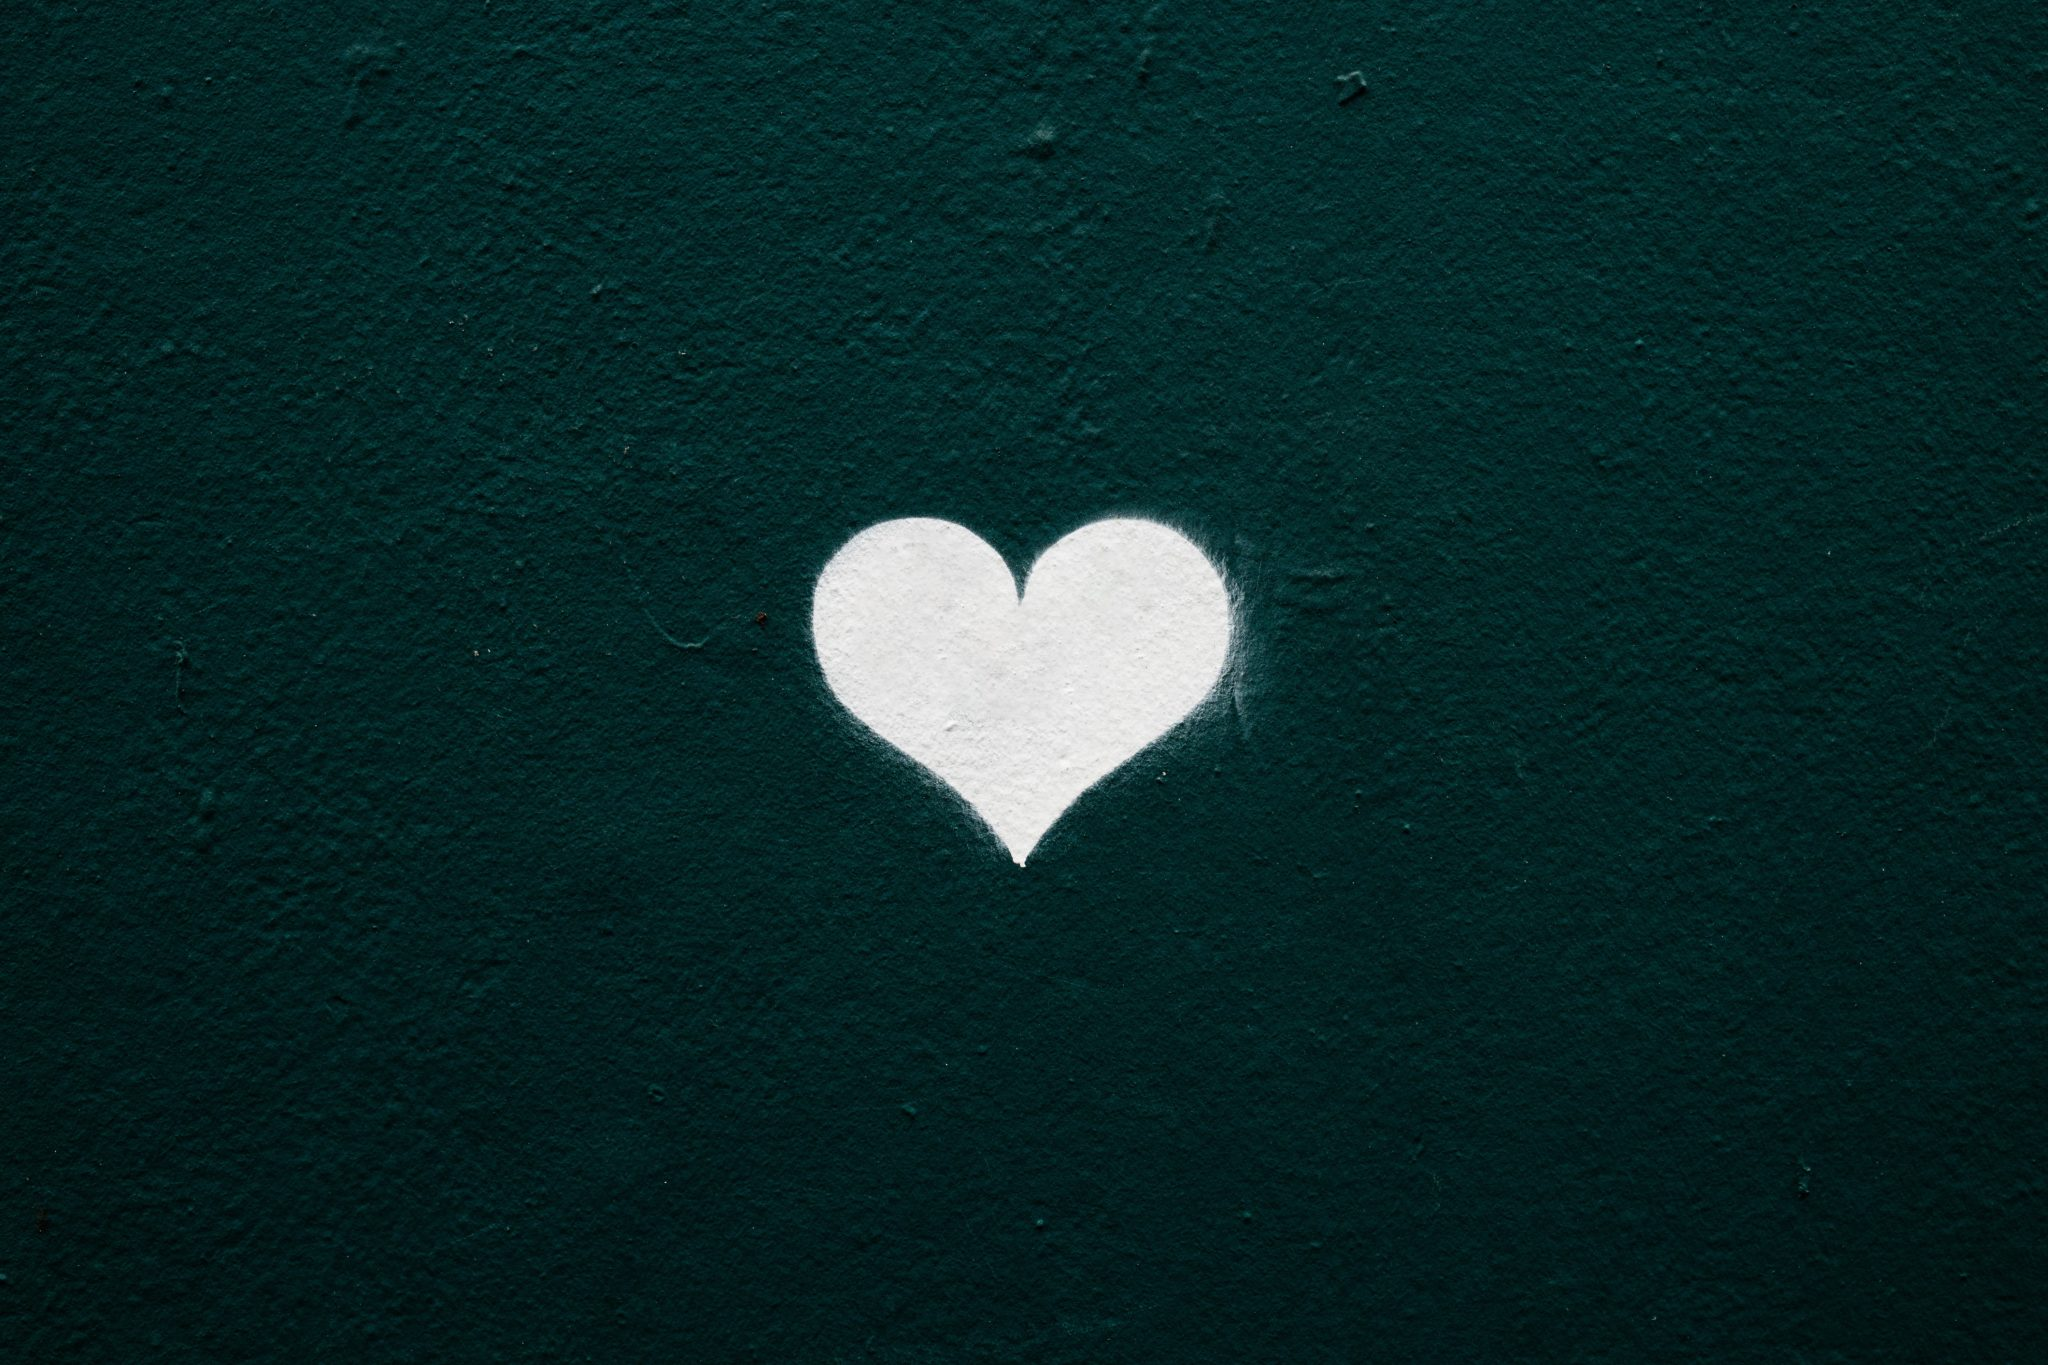 image of a white heart against a black background